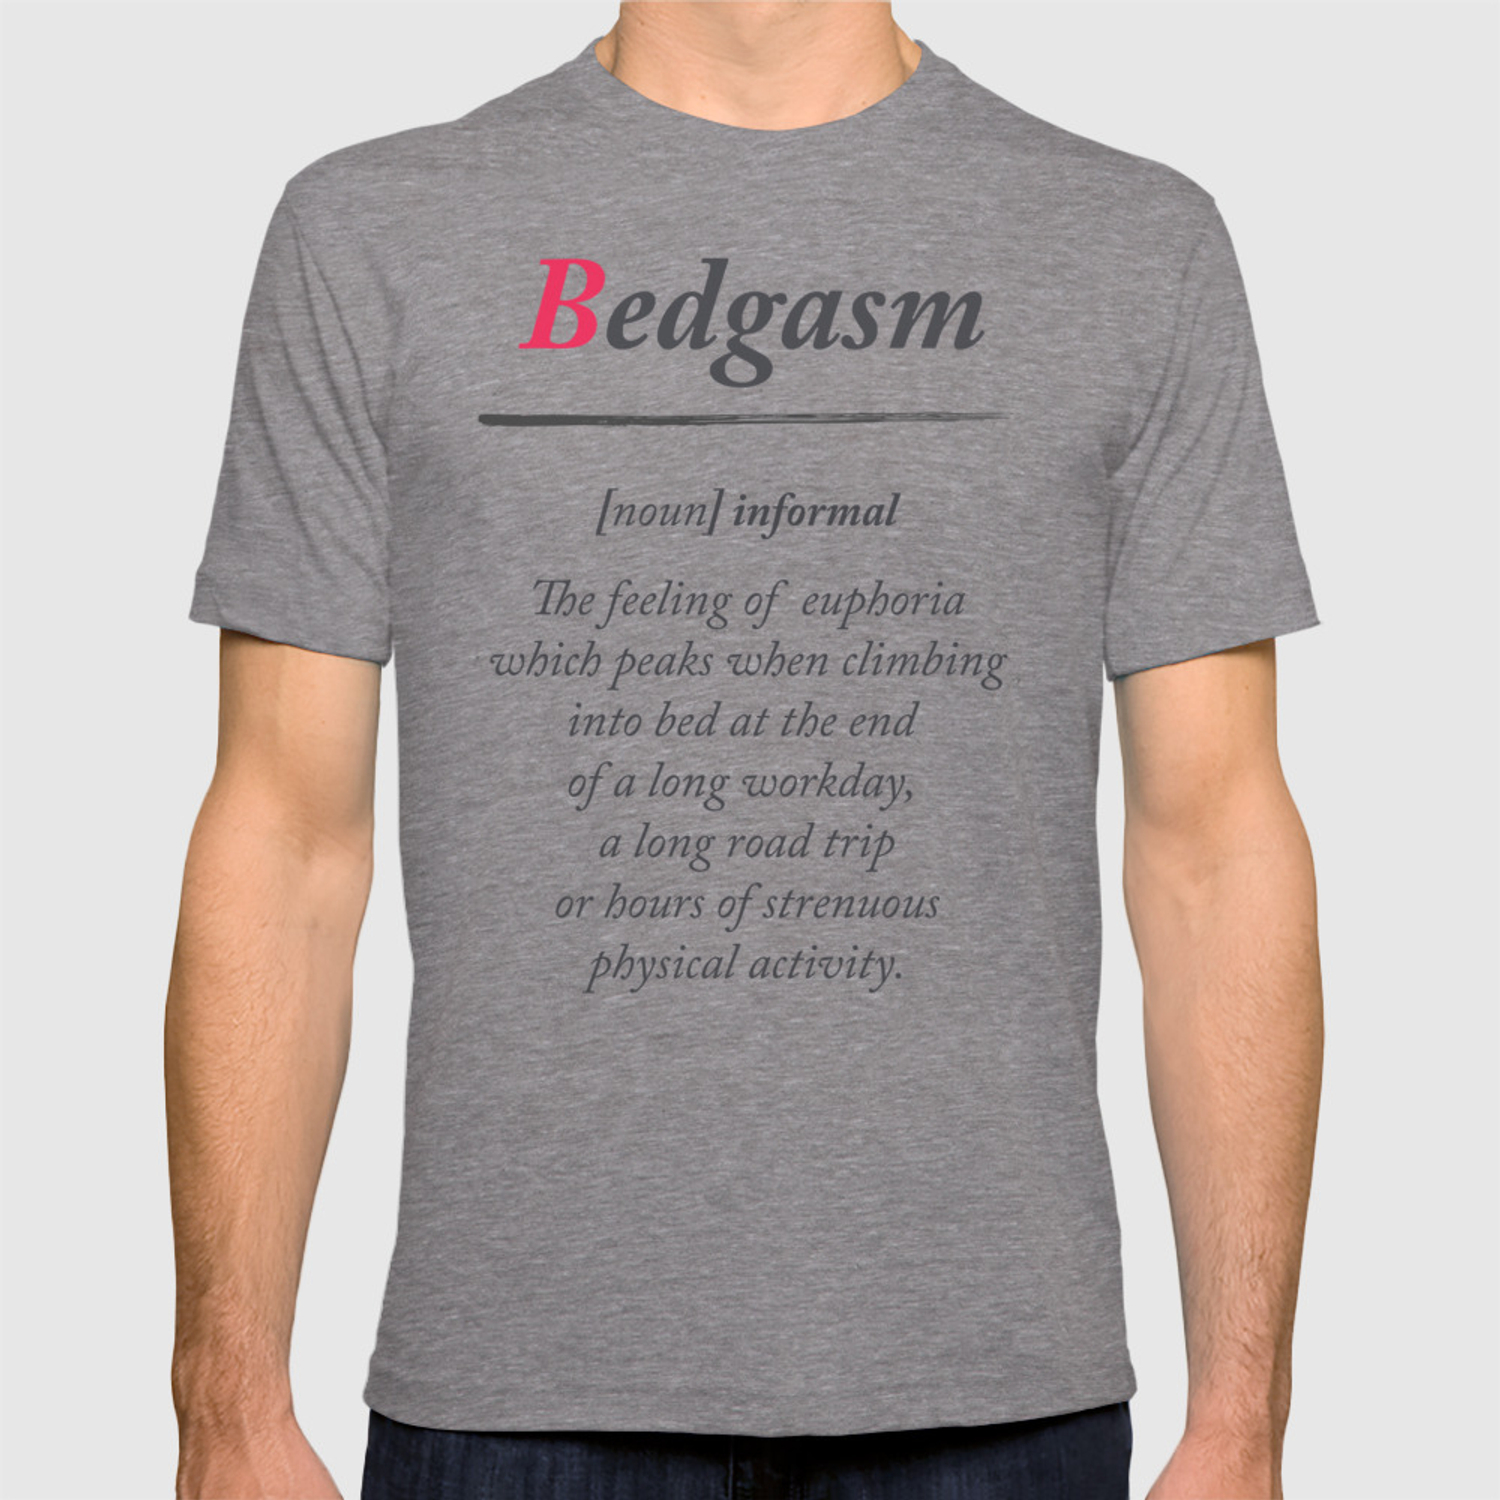 Bedgasm, dictionary definition, word meaning illustration, chill out,  relax, sex, bed orgasm T-shirt